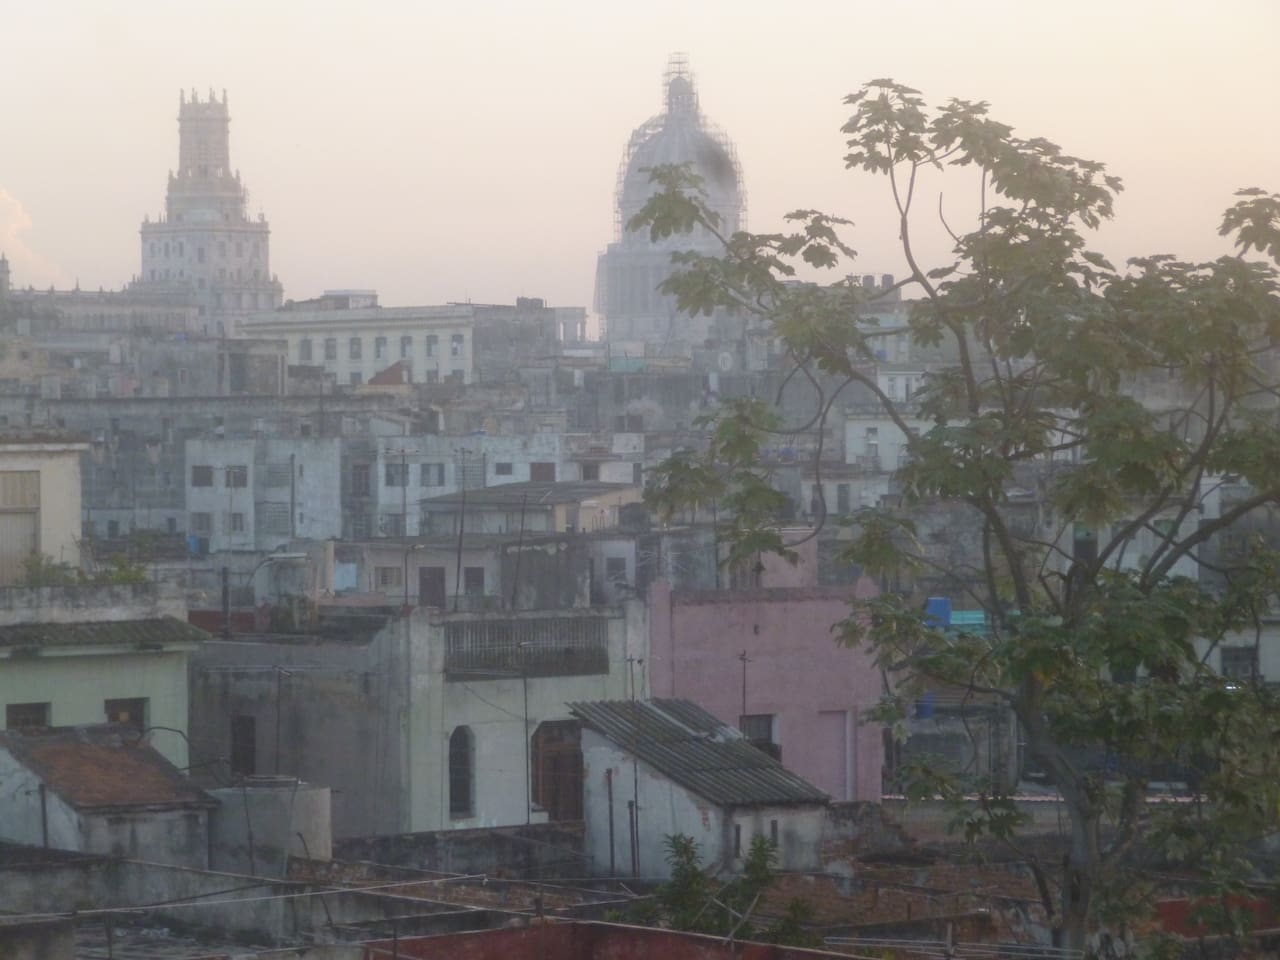 This is the view from the front balcony as sun rises over Old Havana